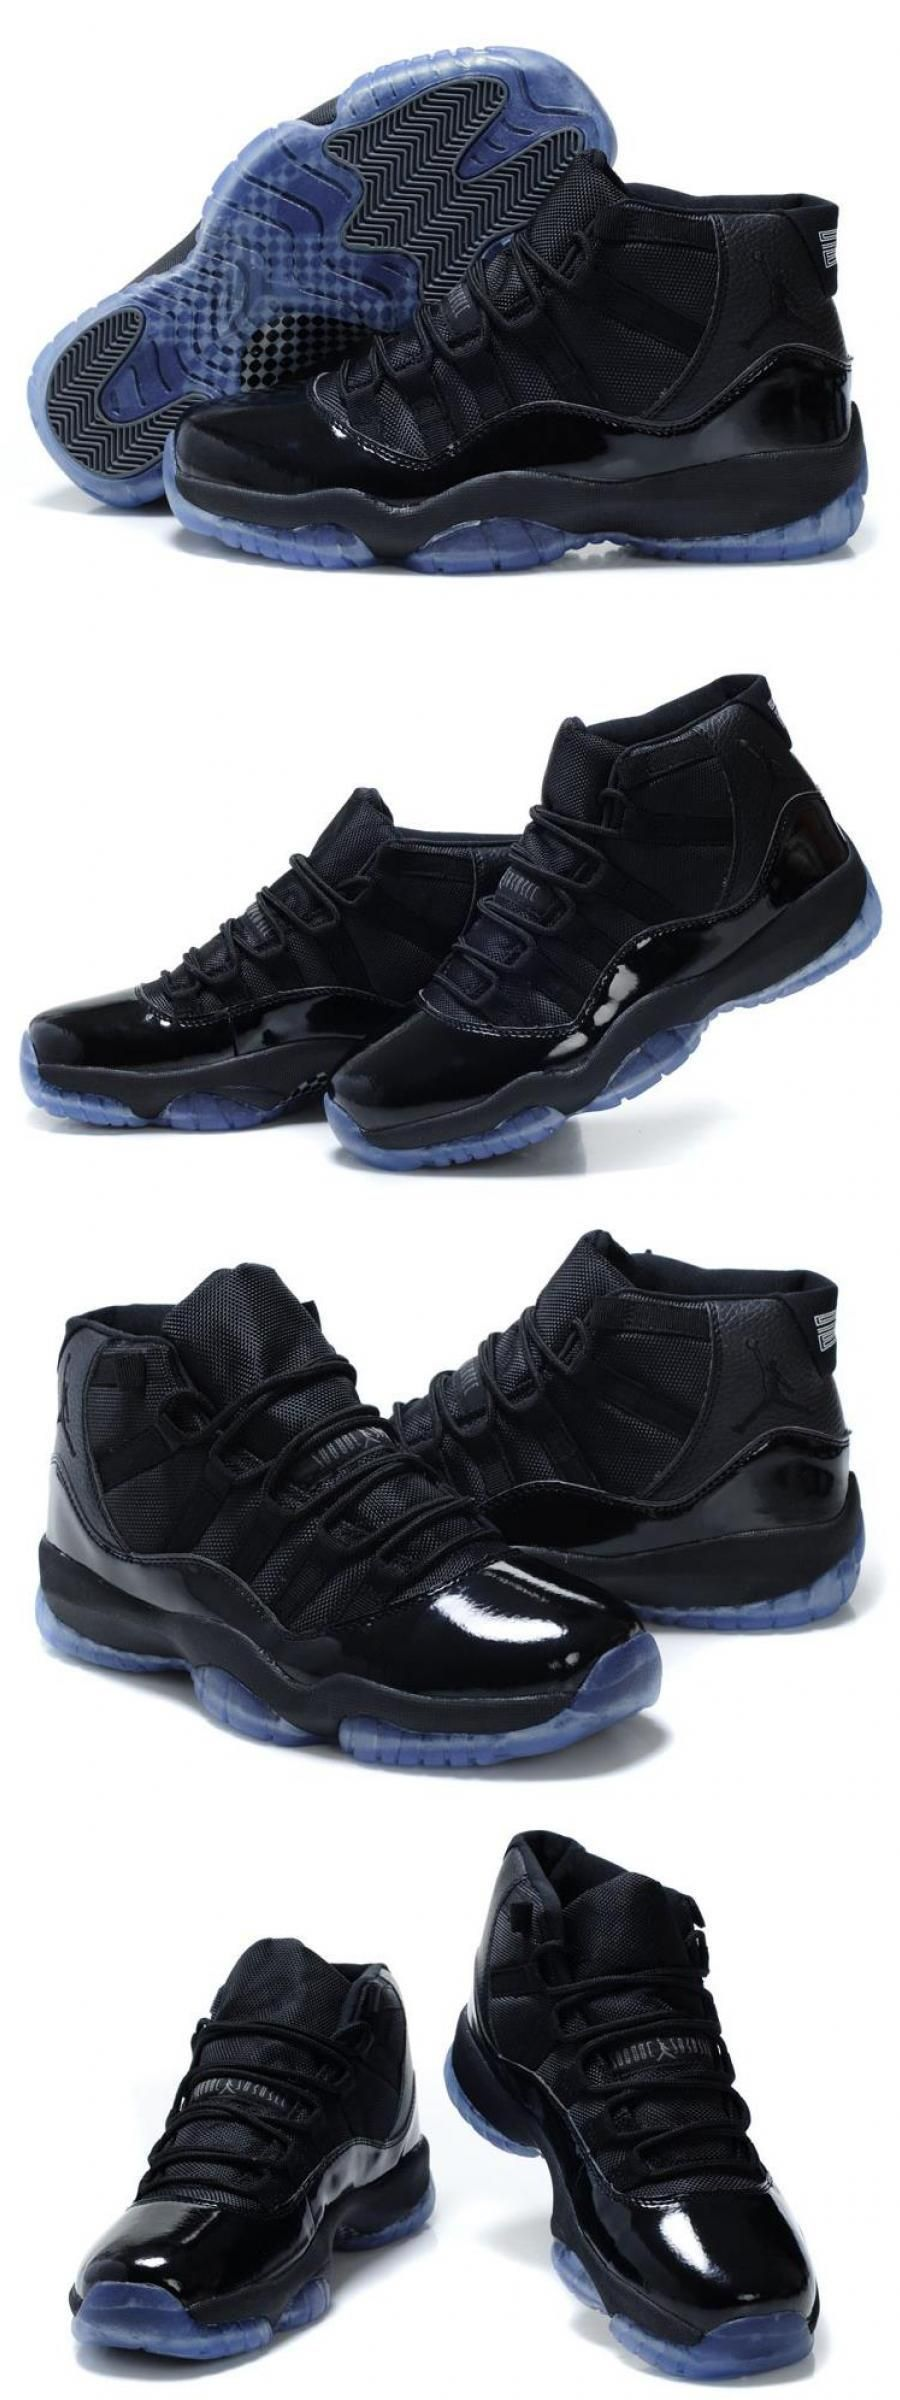 "2020 的 Air Jordan 11 Retro ""blackout"" All Black 主题"